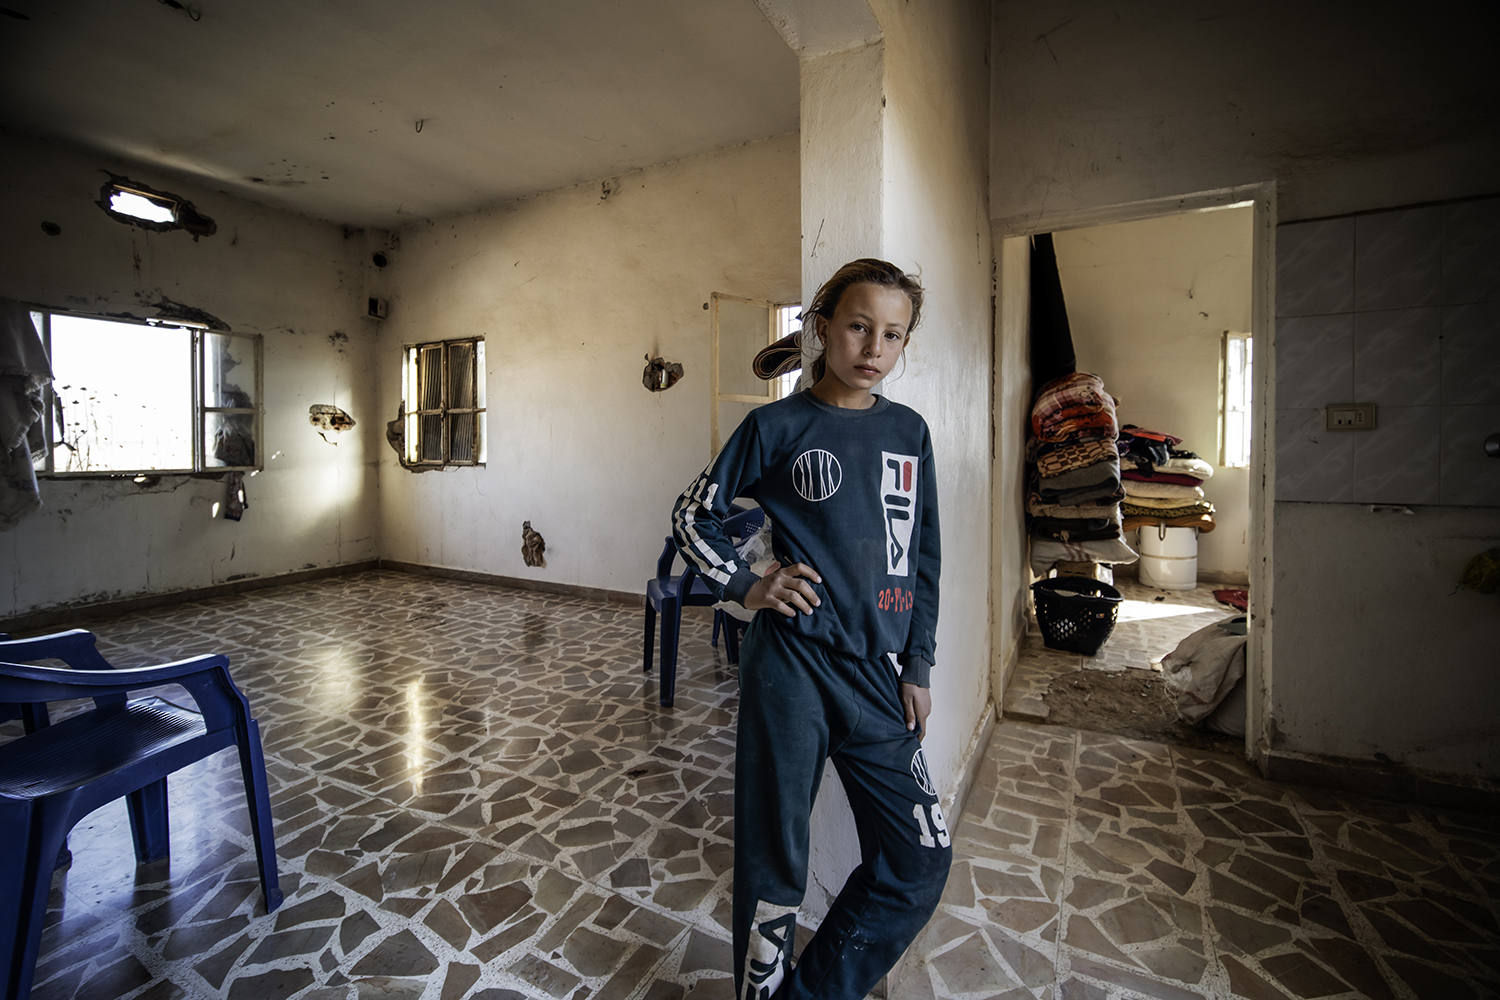 Salem Awyed's 12-year-old daughter stands in her family's new home in the historically Christian village of Tal Hafyan, abandoned during Islamic State rule, on Nov. 9. Most houses show signs of the heavy fighting between Syrian Democratic Forces and the Islamic State.